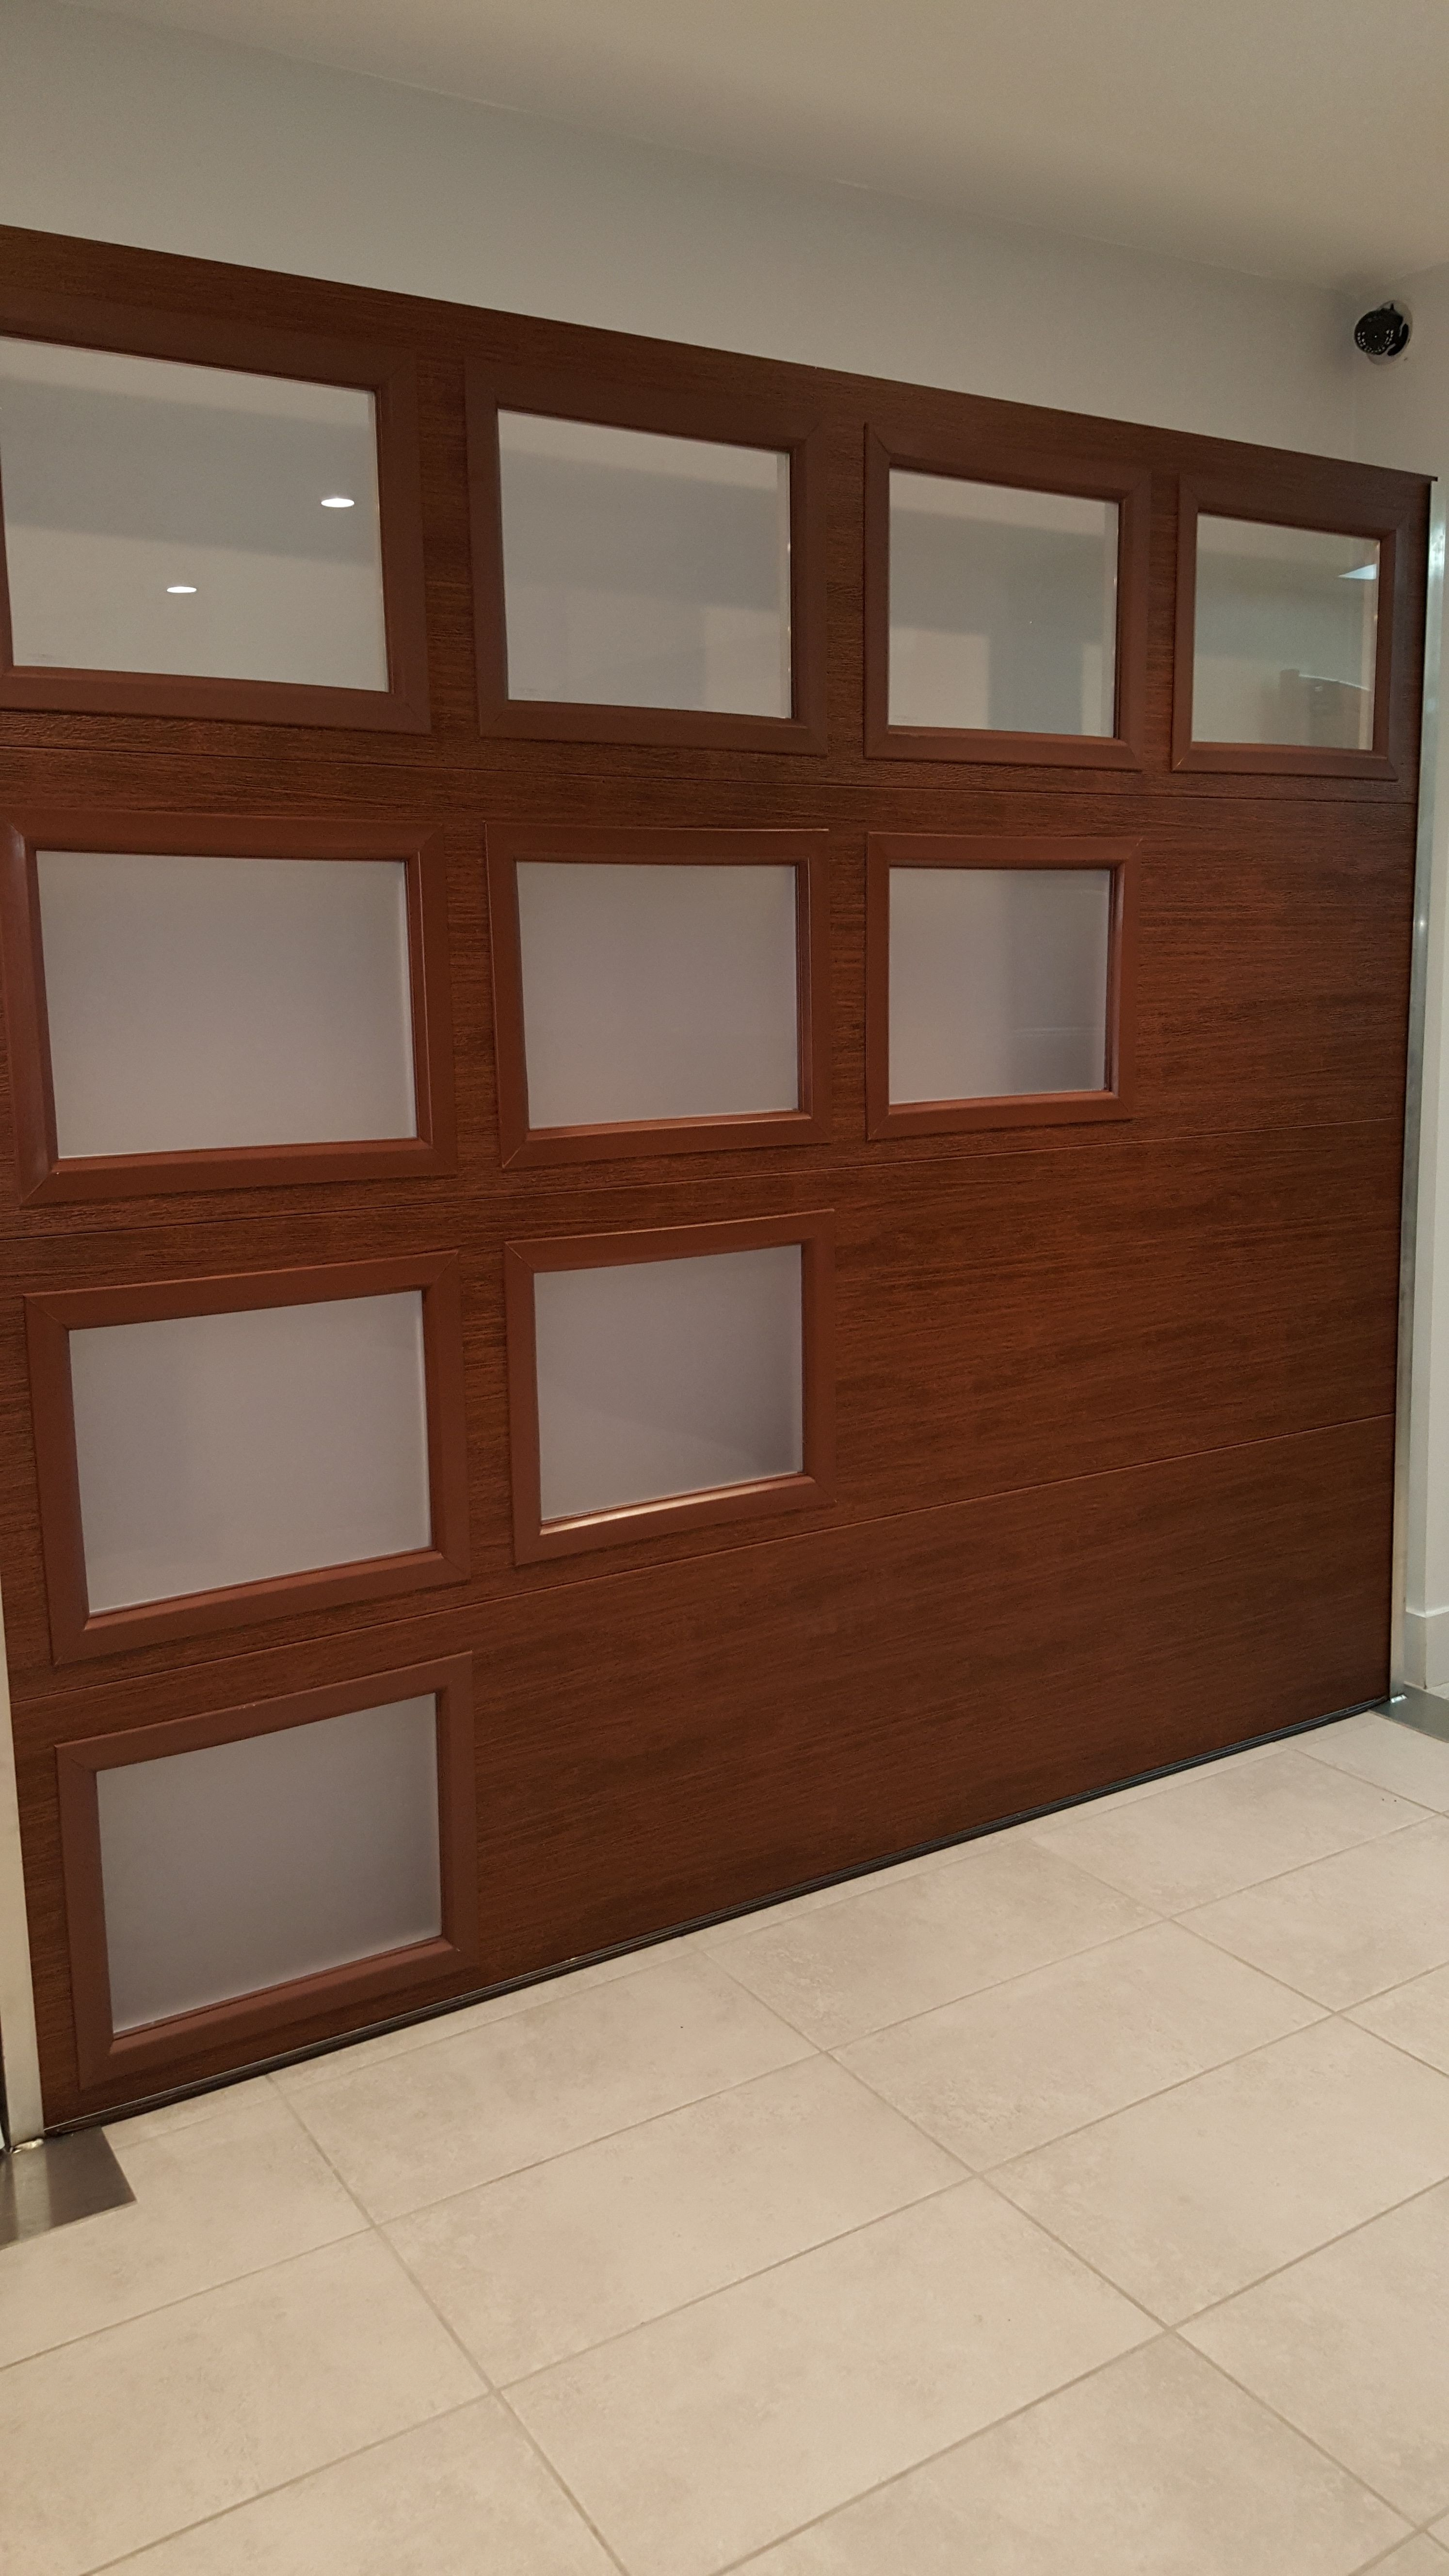 Clopay Modern Steel Collection Garage Doors With Faux Woodgrain